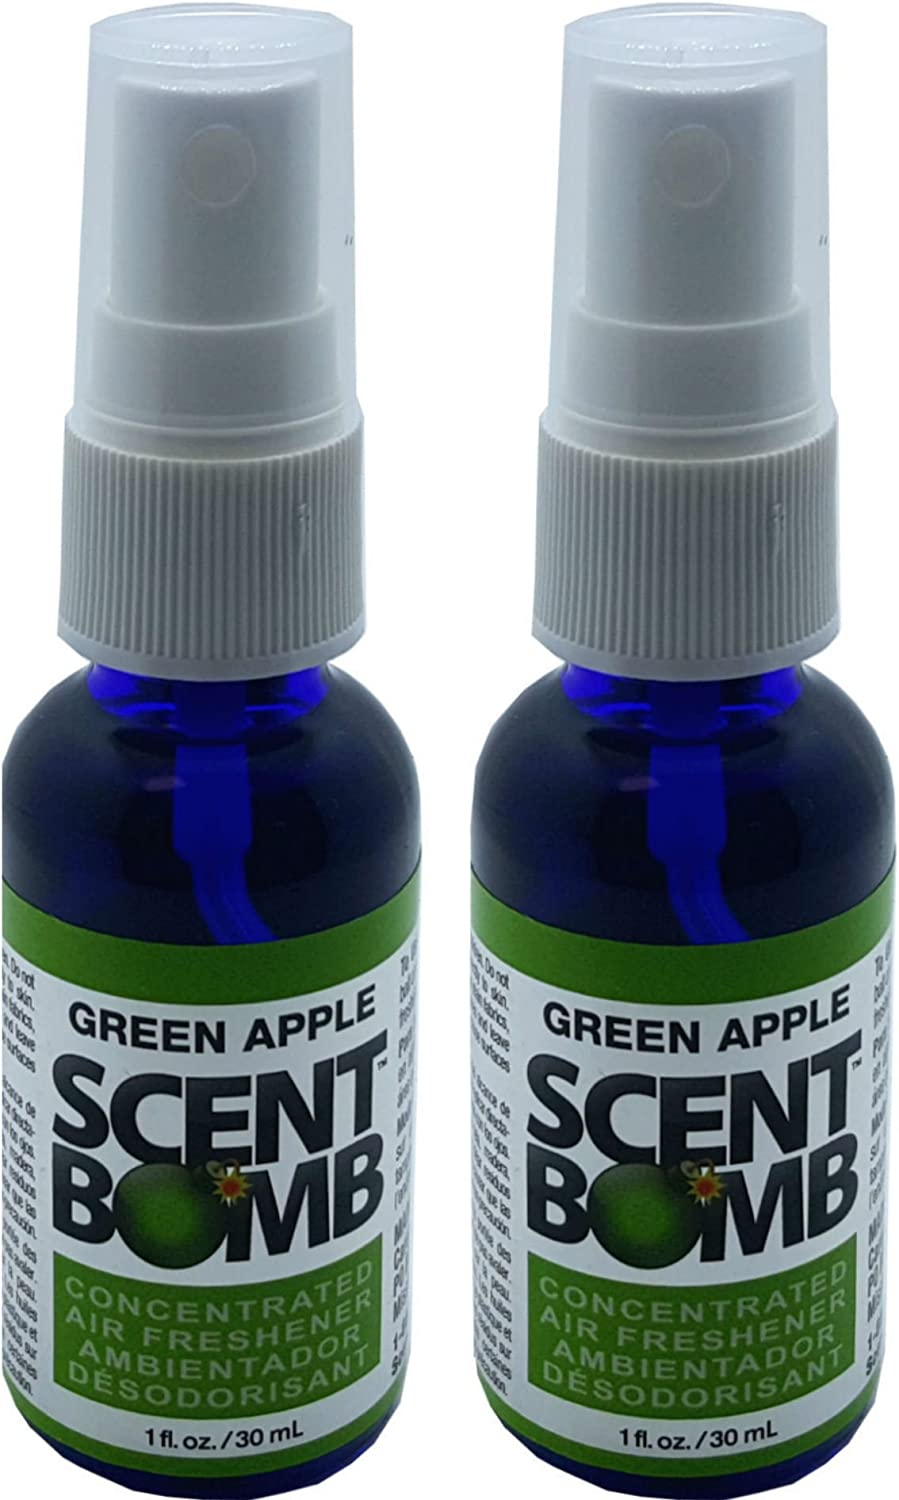 Scent Bomb Super Strong 100% Concentrated Air Freshener - 2 PACK (Green Apple)